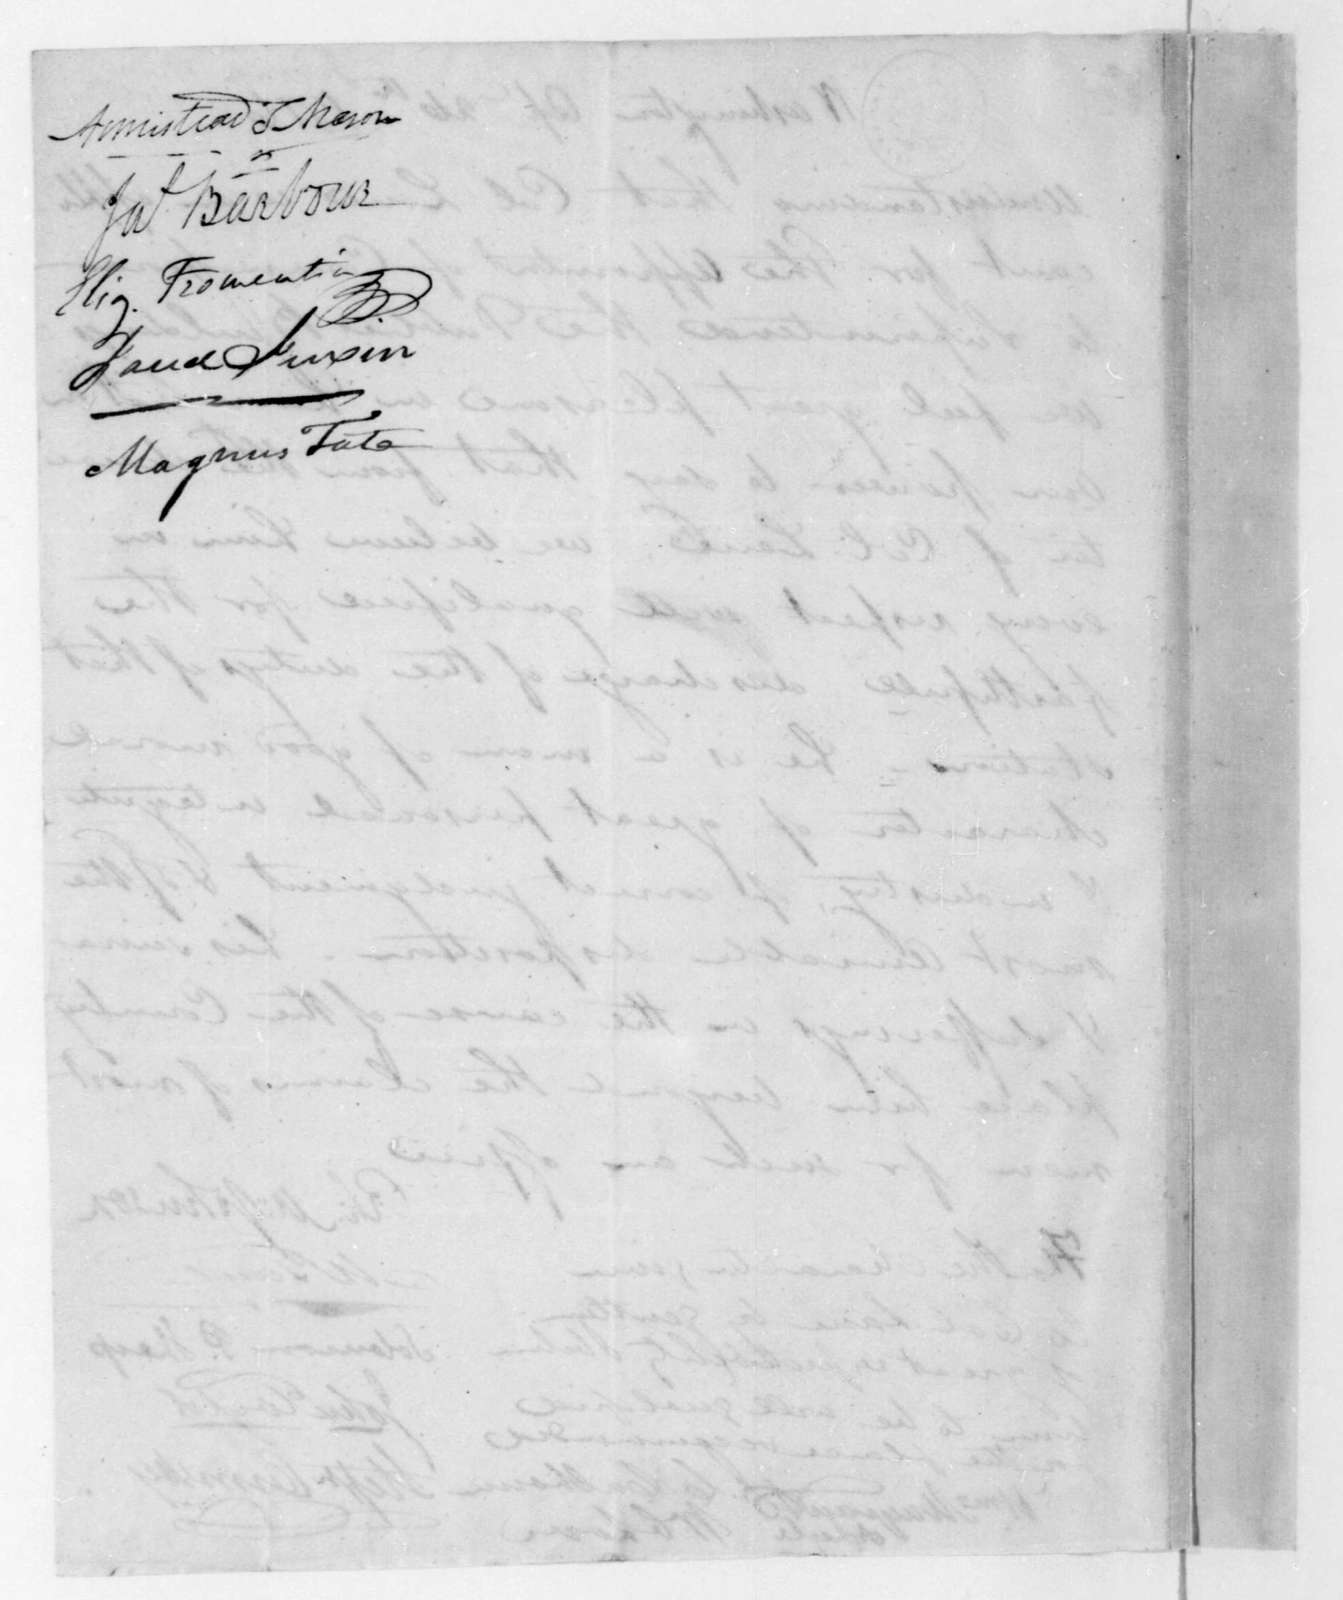 Richard M. Johnson to James Madison, April 26, 1816. Recommendation of Lane.